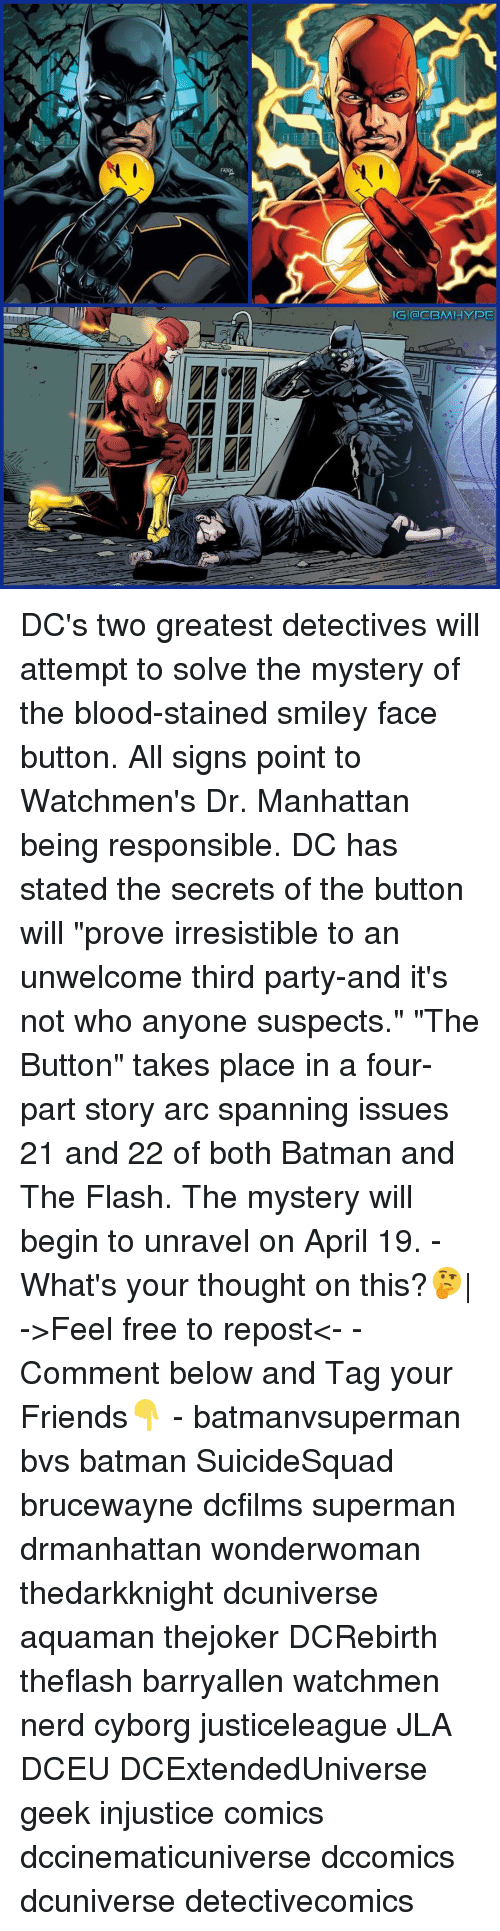 """irresistable: IGI (an CBMIHYPE DC's two greatest detectives will attempt to solve the mystery of the blood-stained smiley face button. All signs point to Watchmen's Dr. Manhattan being responsible. DC has stated the secrets of the button will """"prove irresistible to an unwelcome third party-and it's not who anyone suspects."""" """"The Button"""" takes place in a four-part story arc spanning issues 21 and 22 of both Batman and The Flash. The mystery will begin to unravel on April 19. - What's your thought on this?🤔